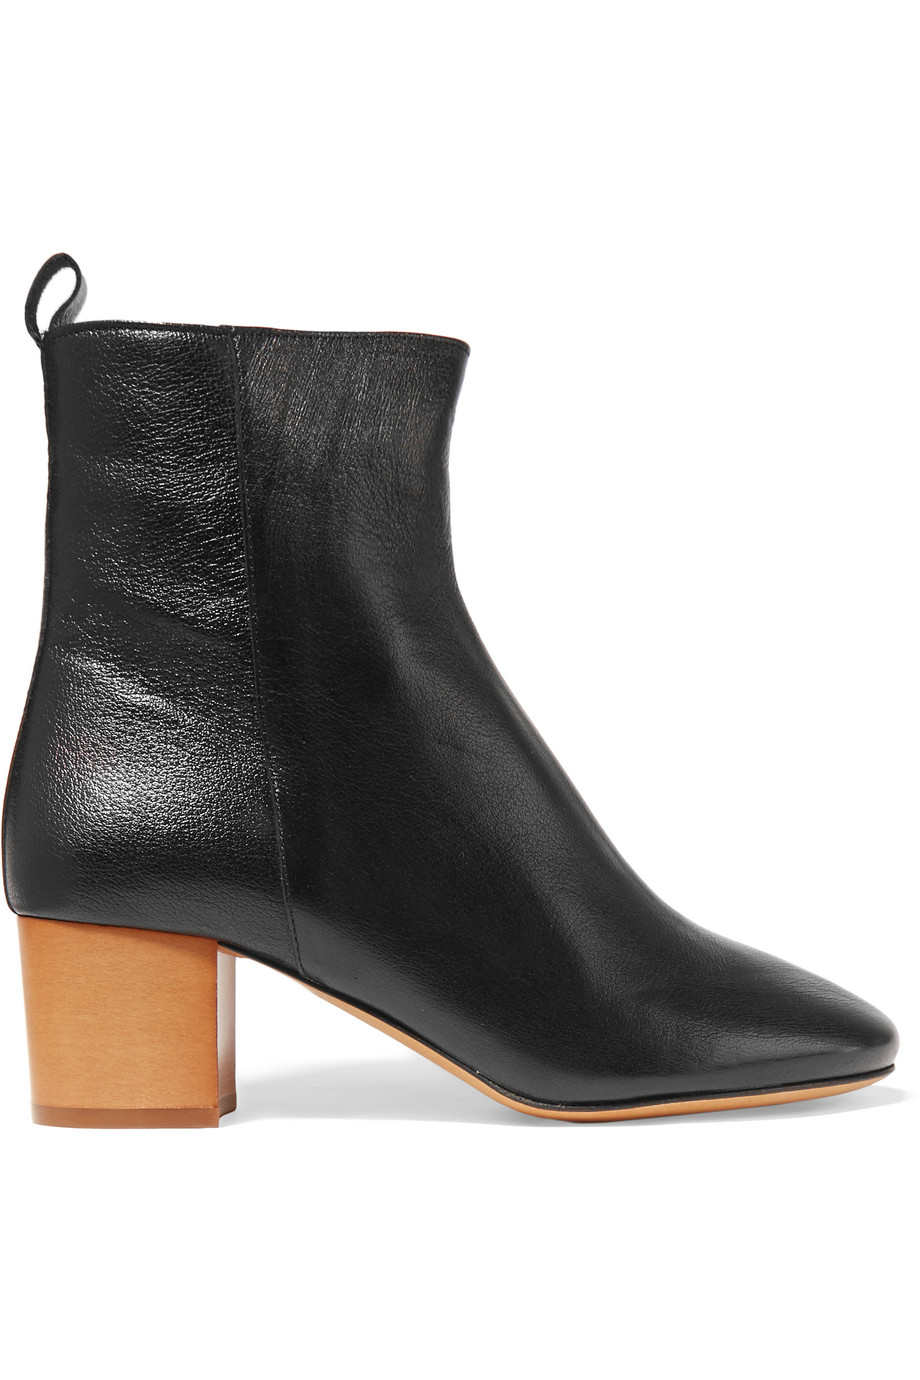 Isabel Marant Étoile Drew Textured-Leather Ankle Boots, Black, Women's US Size: 9.5, Size: 41